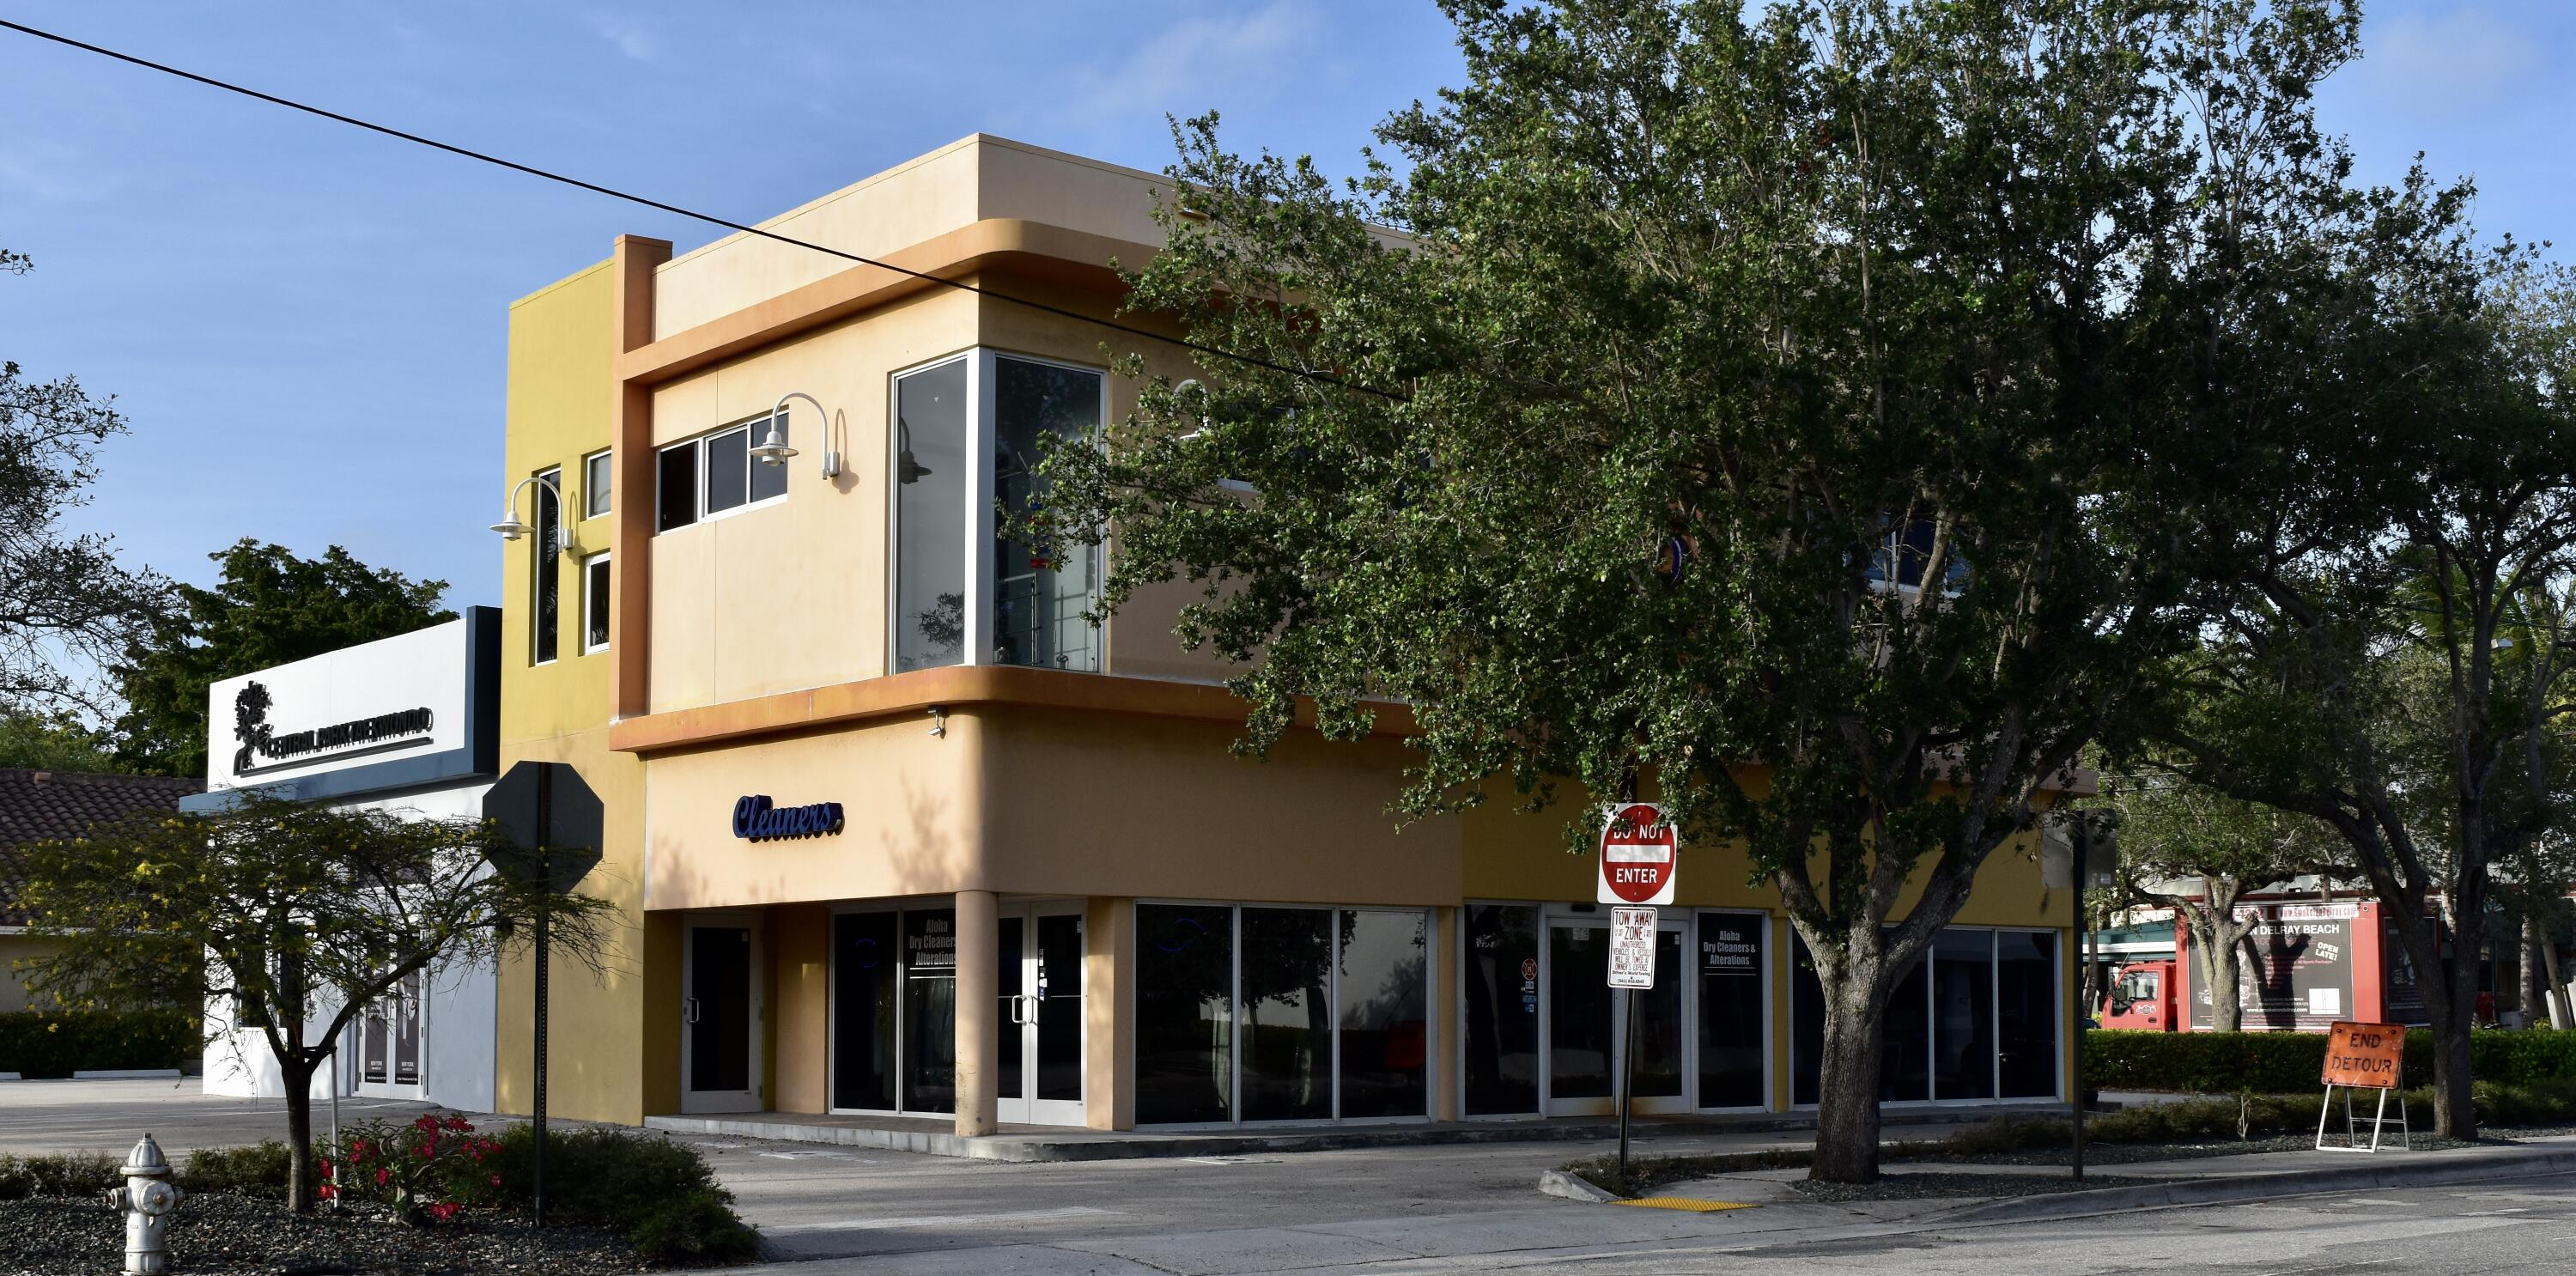 501 2nd Street, Delray Beach, Florida 33444, ,2 BathroomsBathrooms,Commercial Industrial,For Sale,2nd,RX-10722581